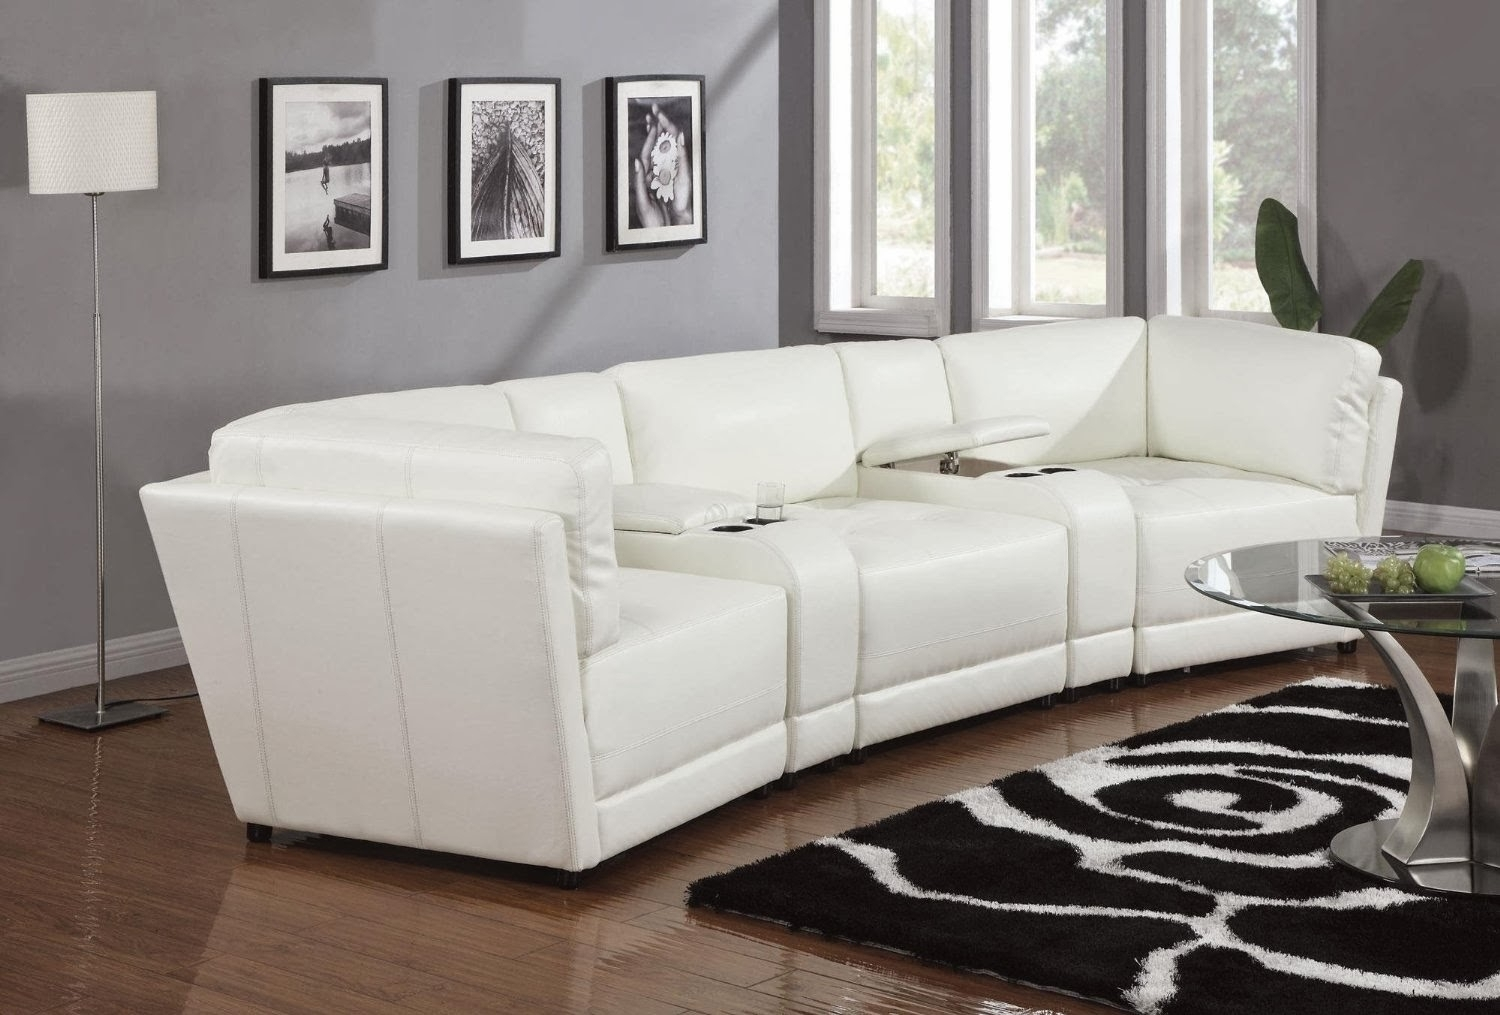 Sectional Sofas Vancouver Bc | Conceptstructuresllc In Sectional Sofas At Bc Canada (View 4 of 10)